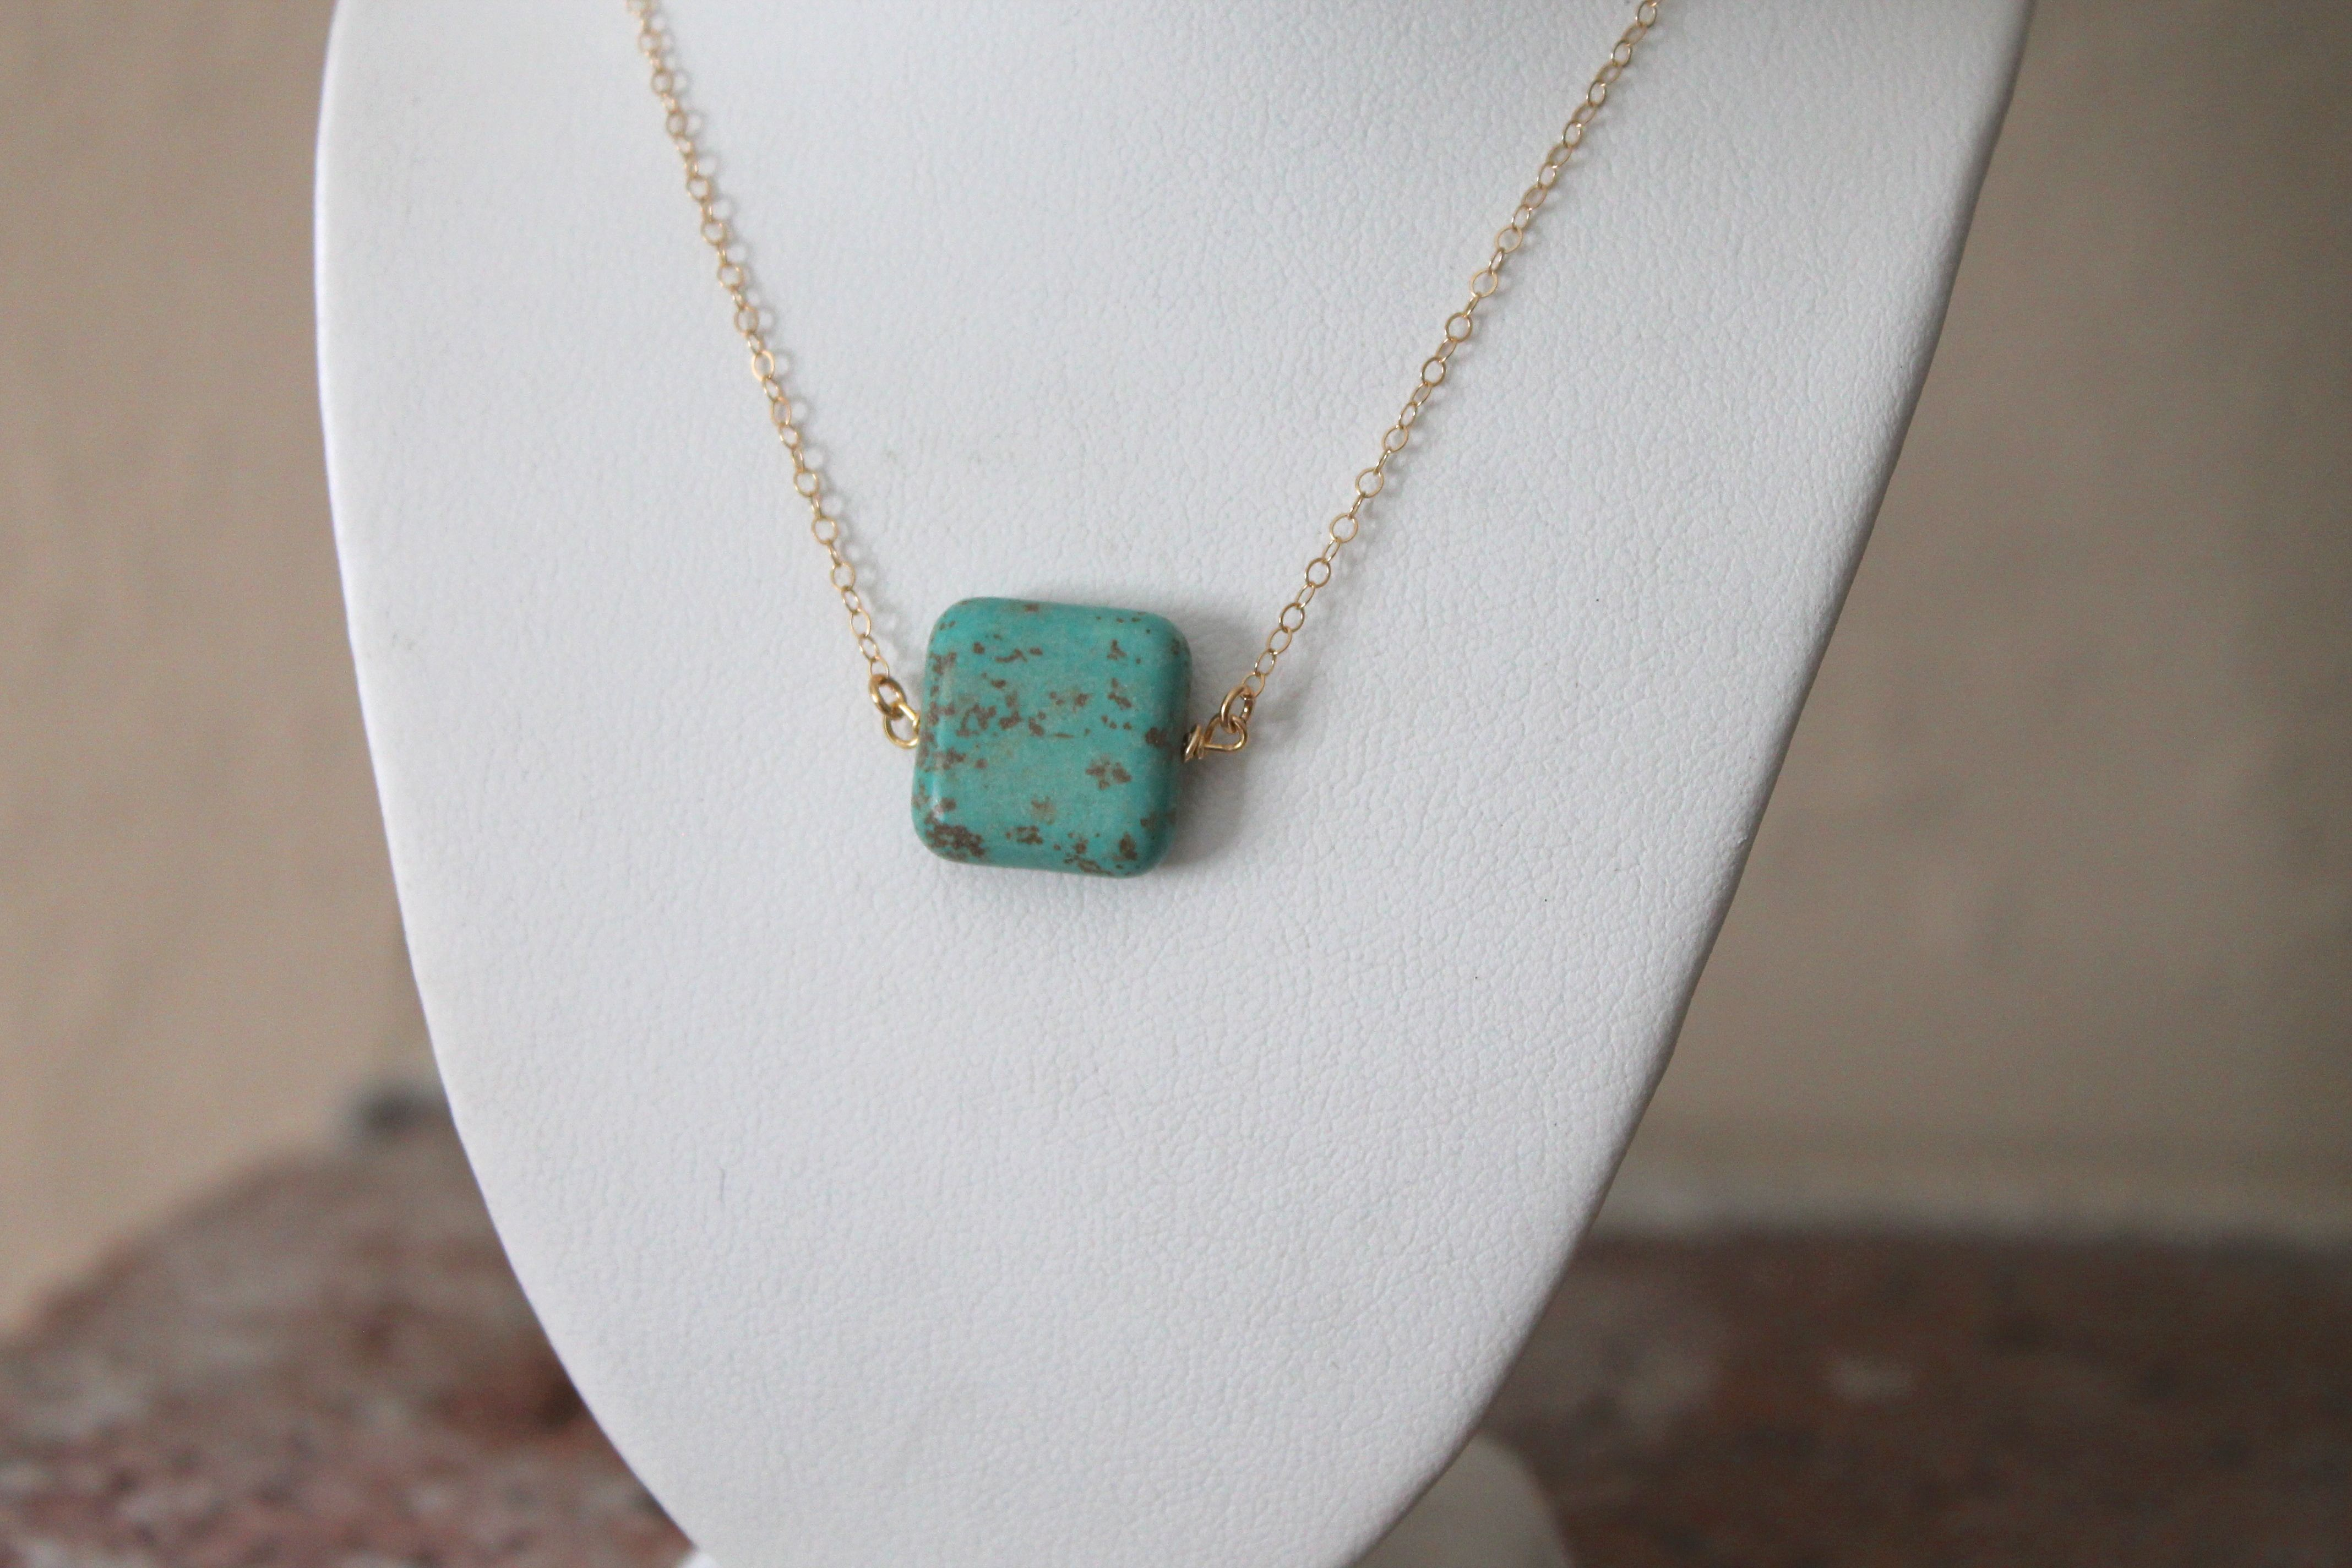 Turquoise Square Pendant Necklace Lucymint Online Store Powered